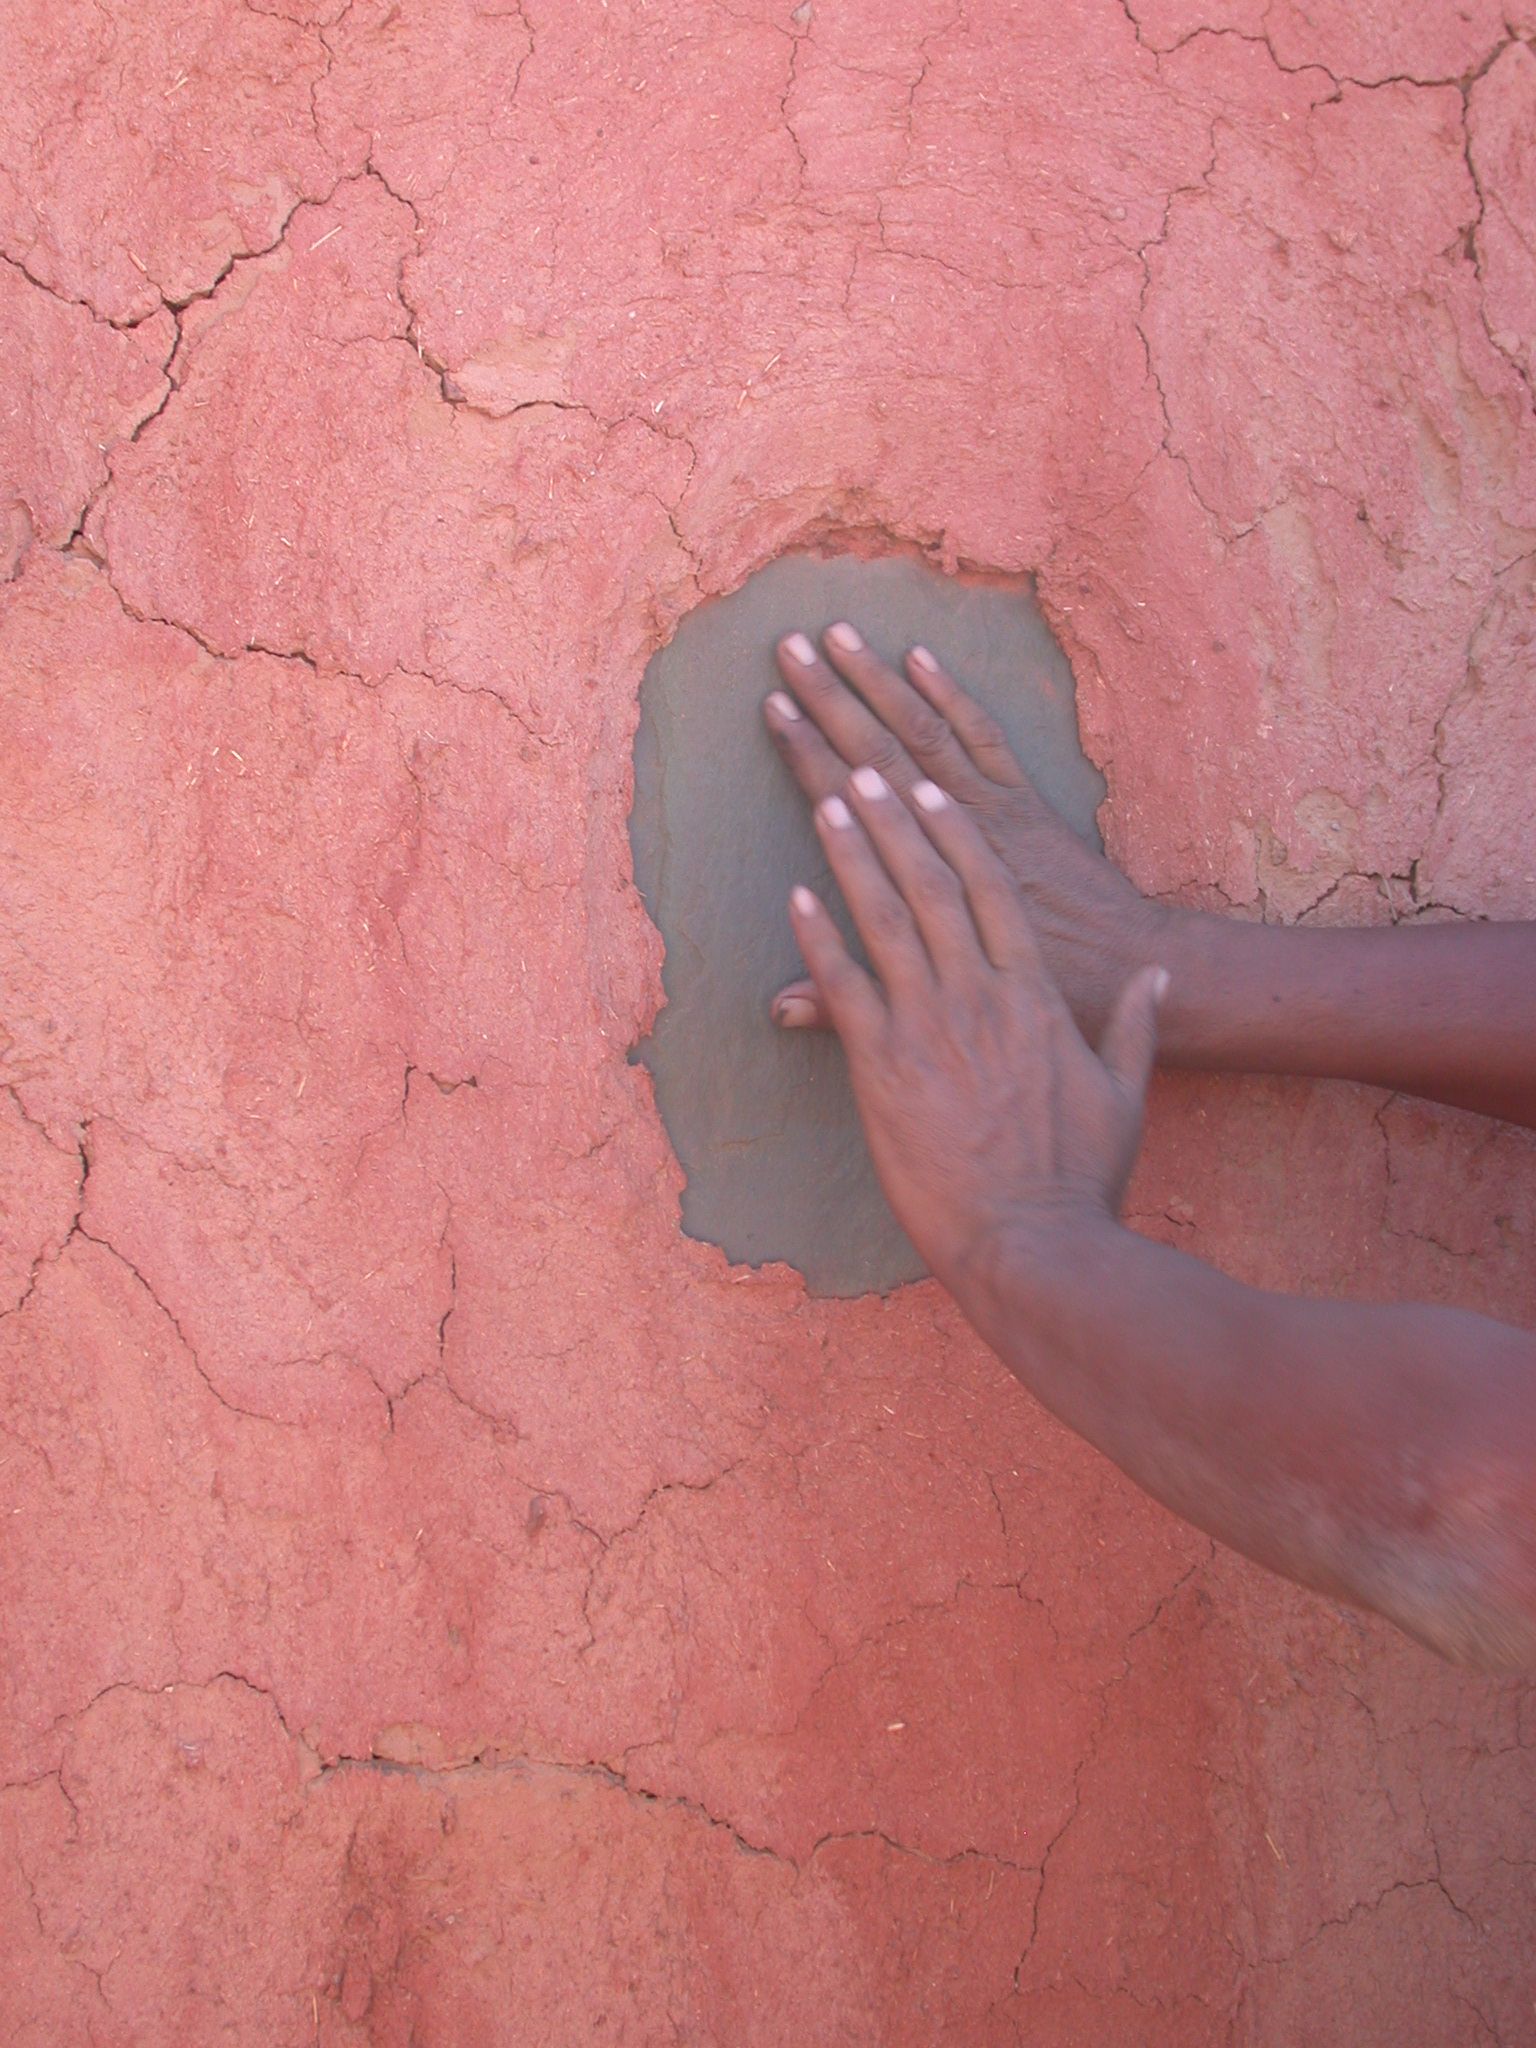 Prayer Spot on Wall When Water Unavailable, Home in Oualata, Mauritania